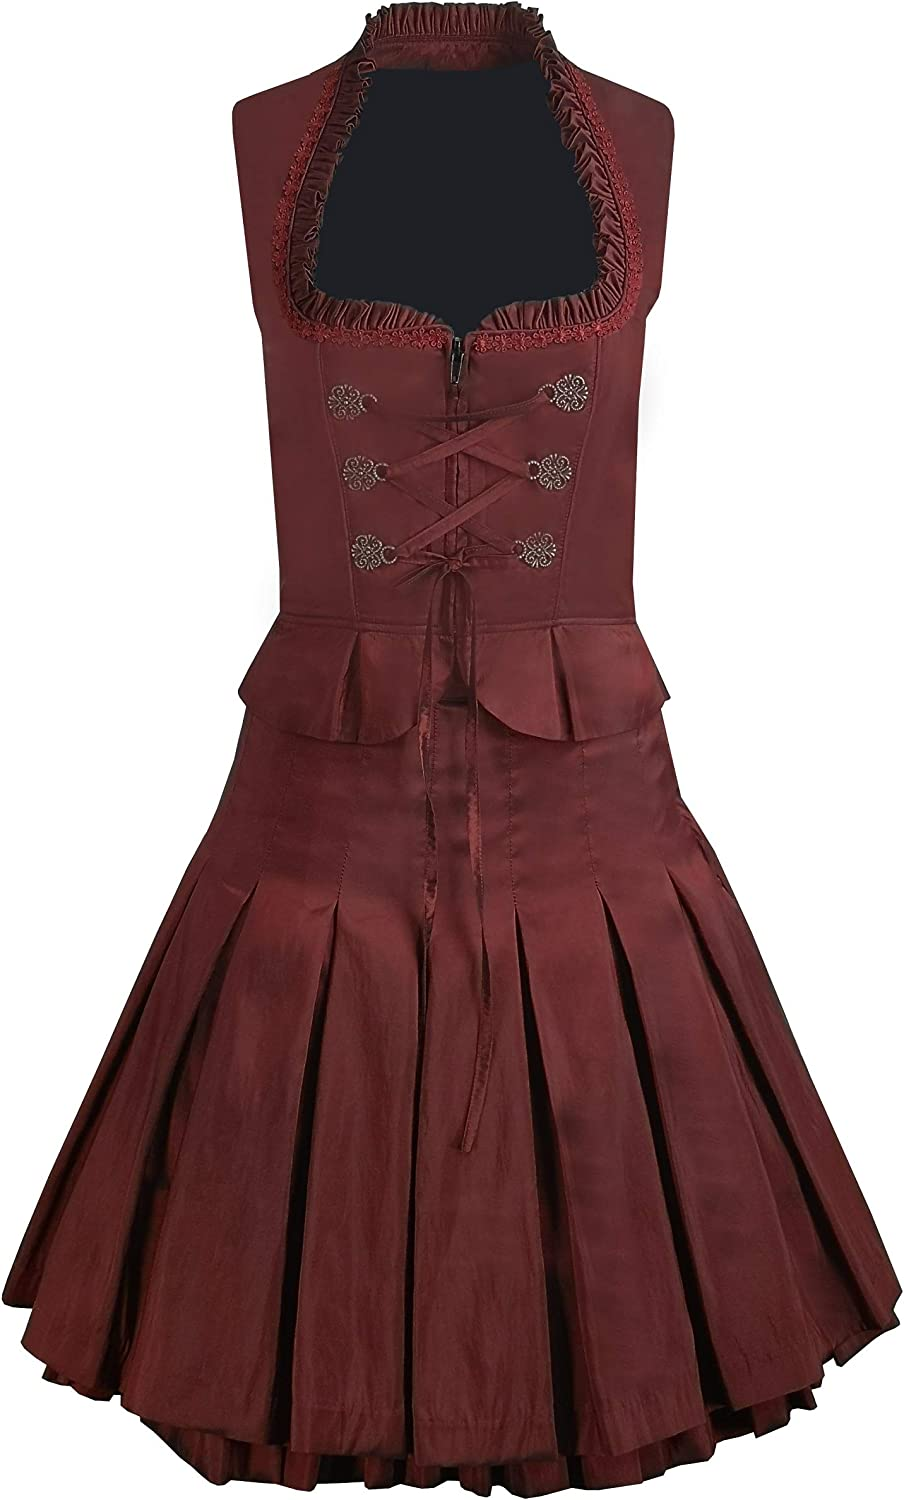 Women Dirndl SEAL limited product Skirt and Bodice Traditional Chicago Mall German Bavarian Costum